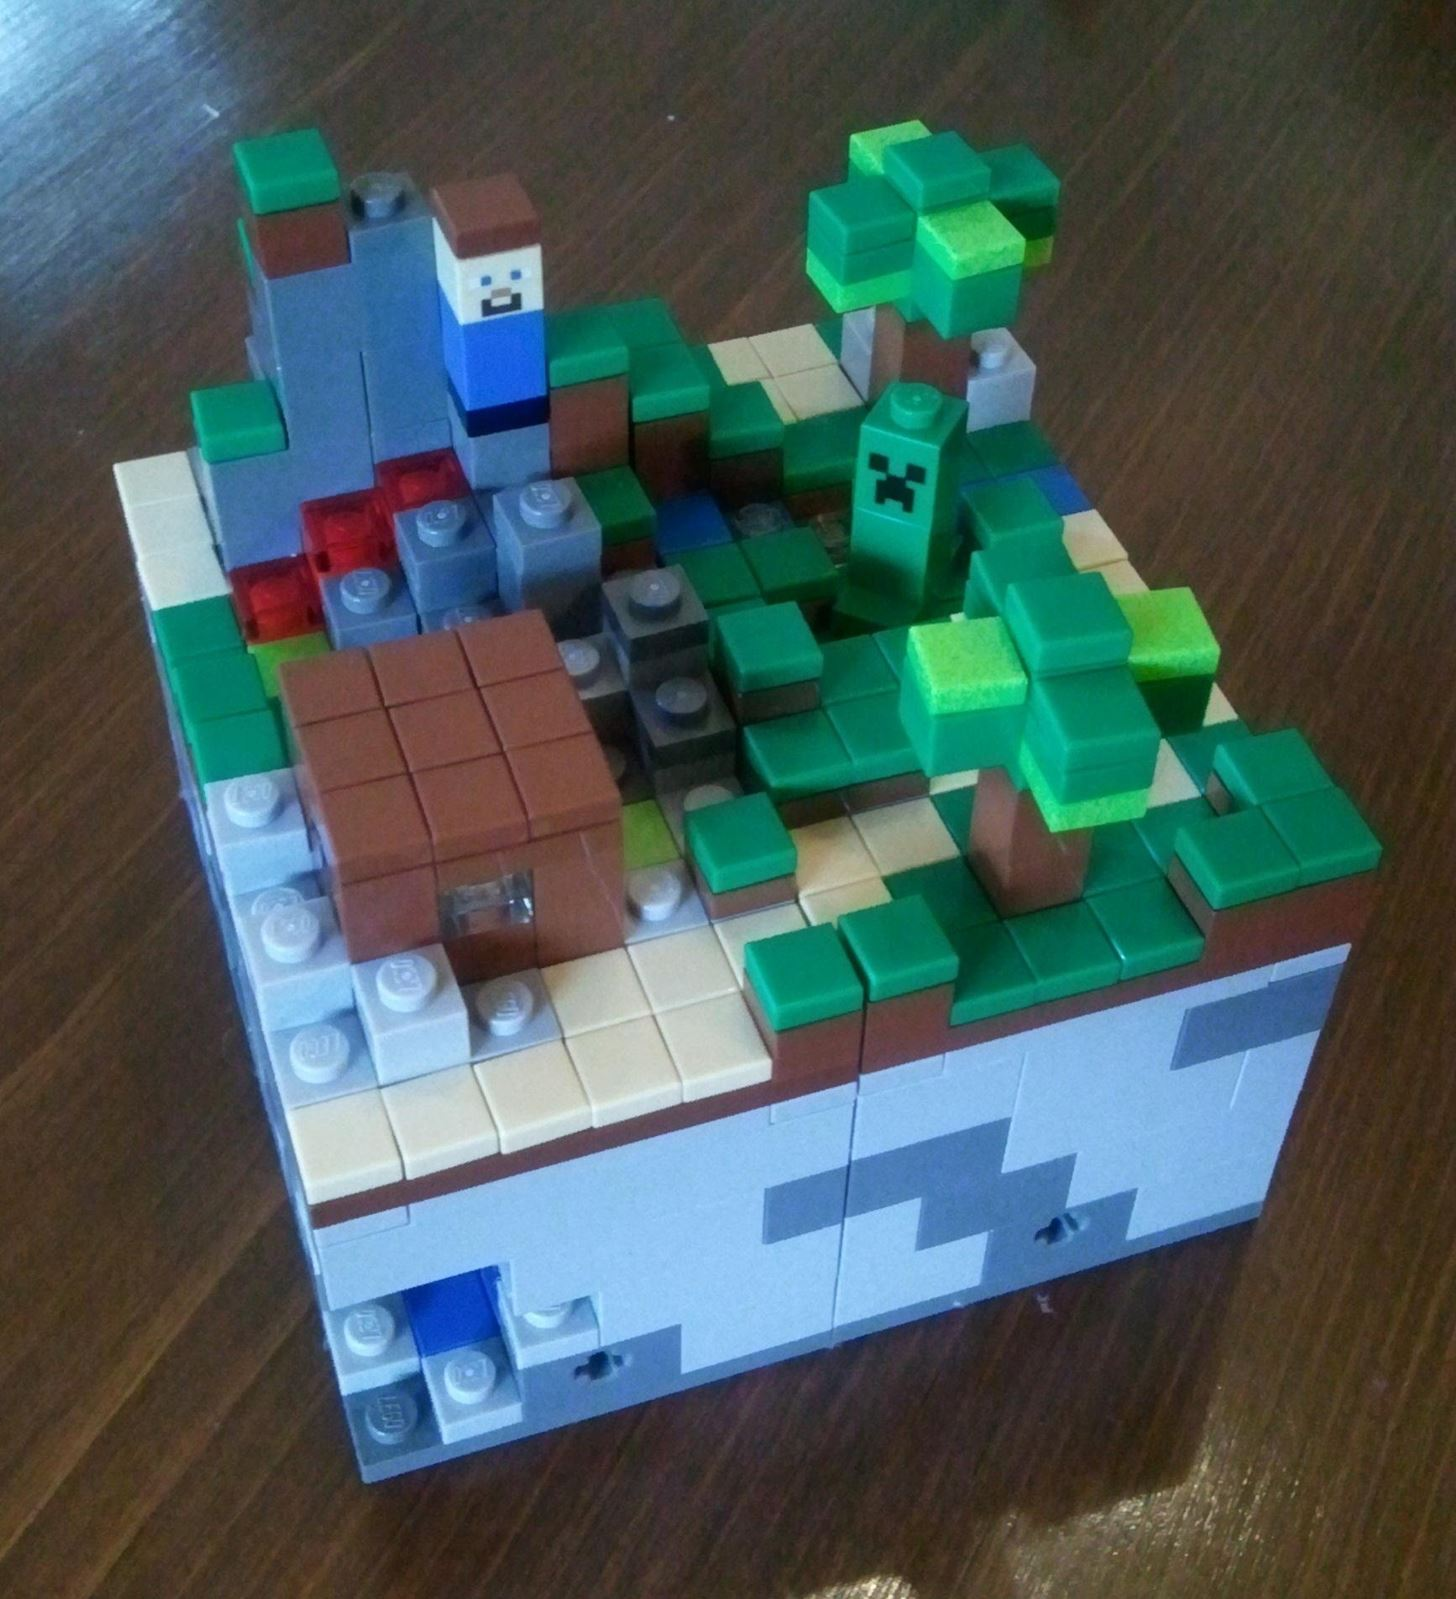 New Minecraft LEGOs for Displaying, Not Playing